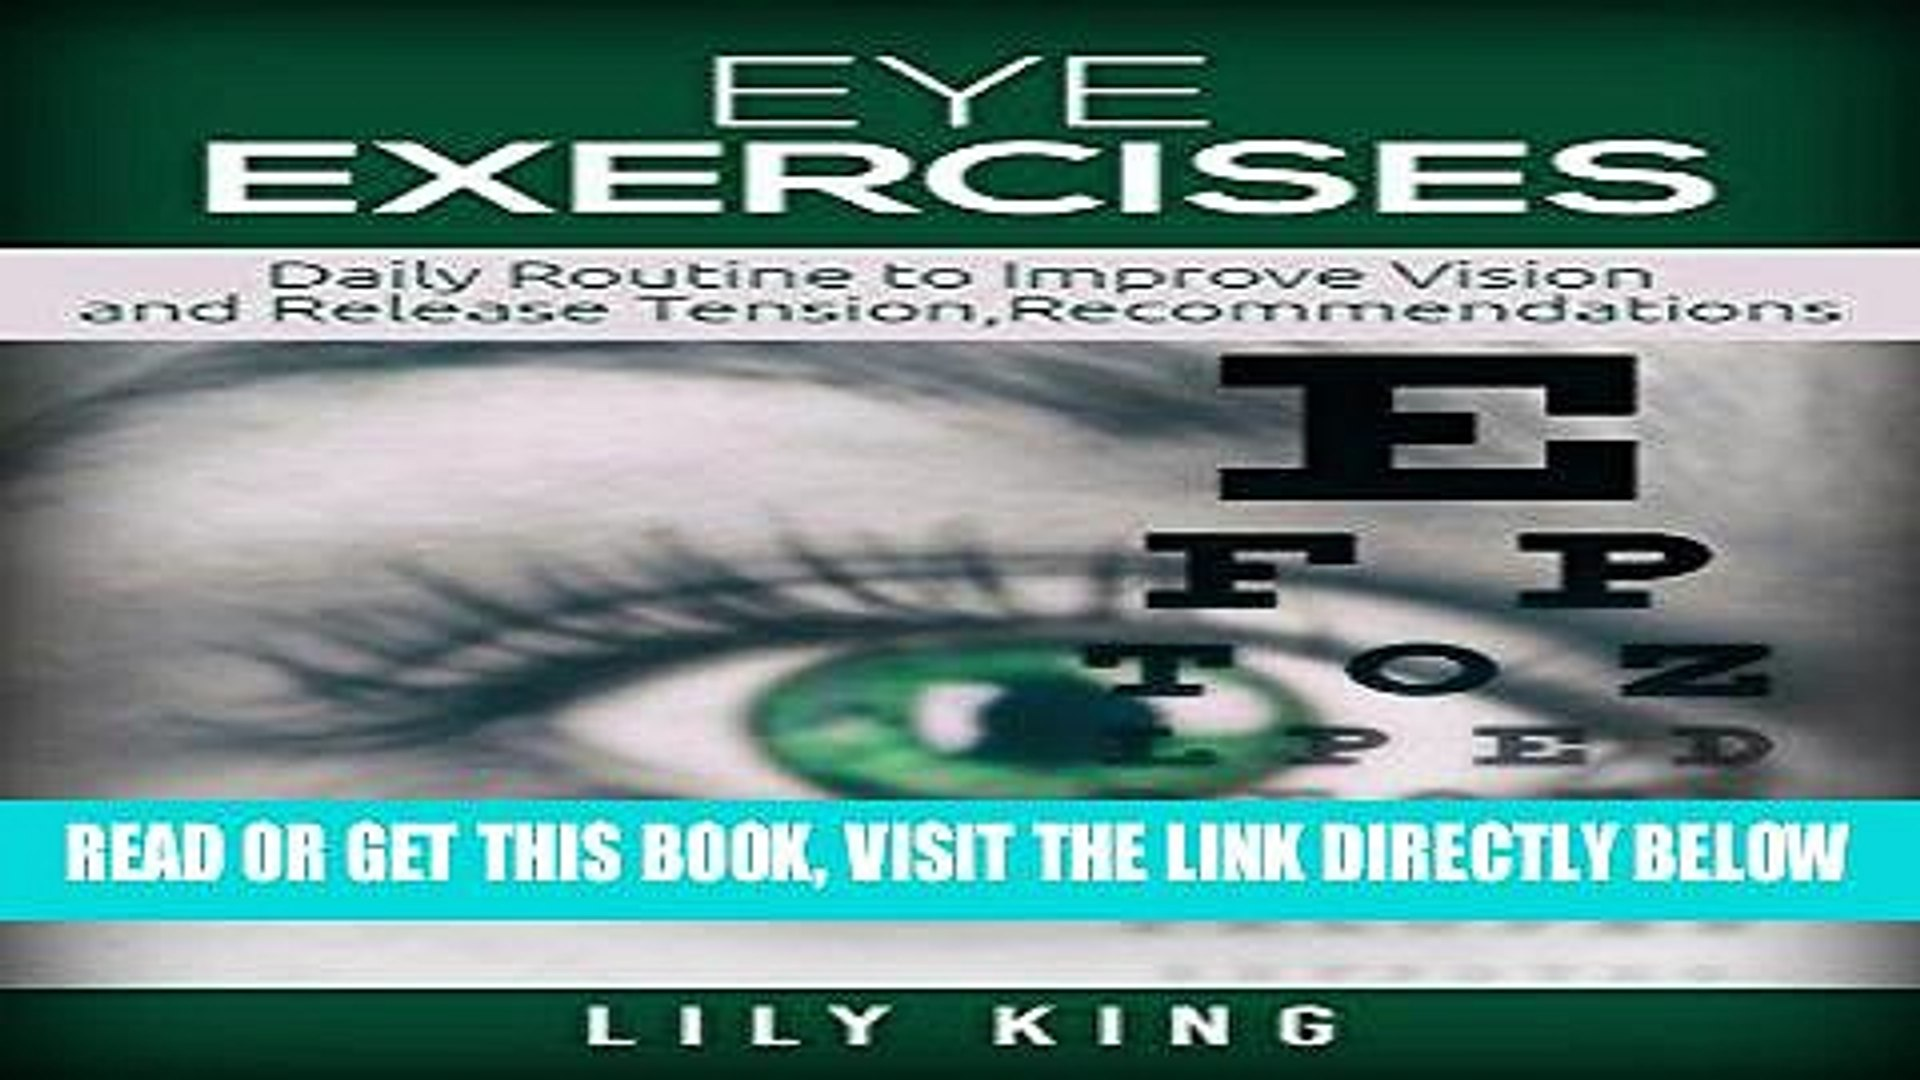 [EBOOK] DOWNLOAD Eye Exercises: Daily Routine to Improve Vision and Release Tension,